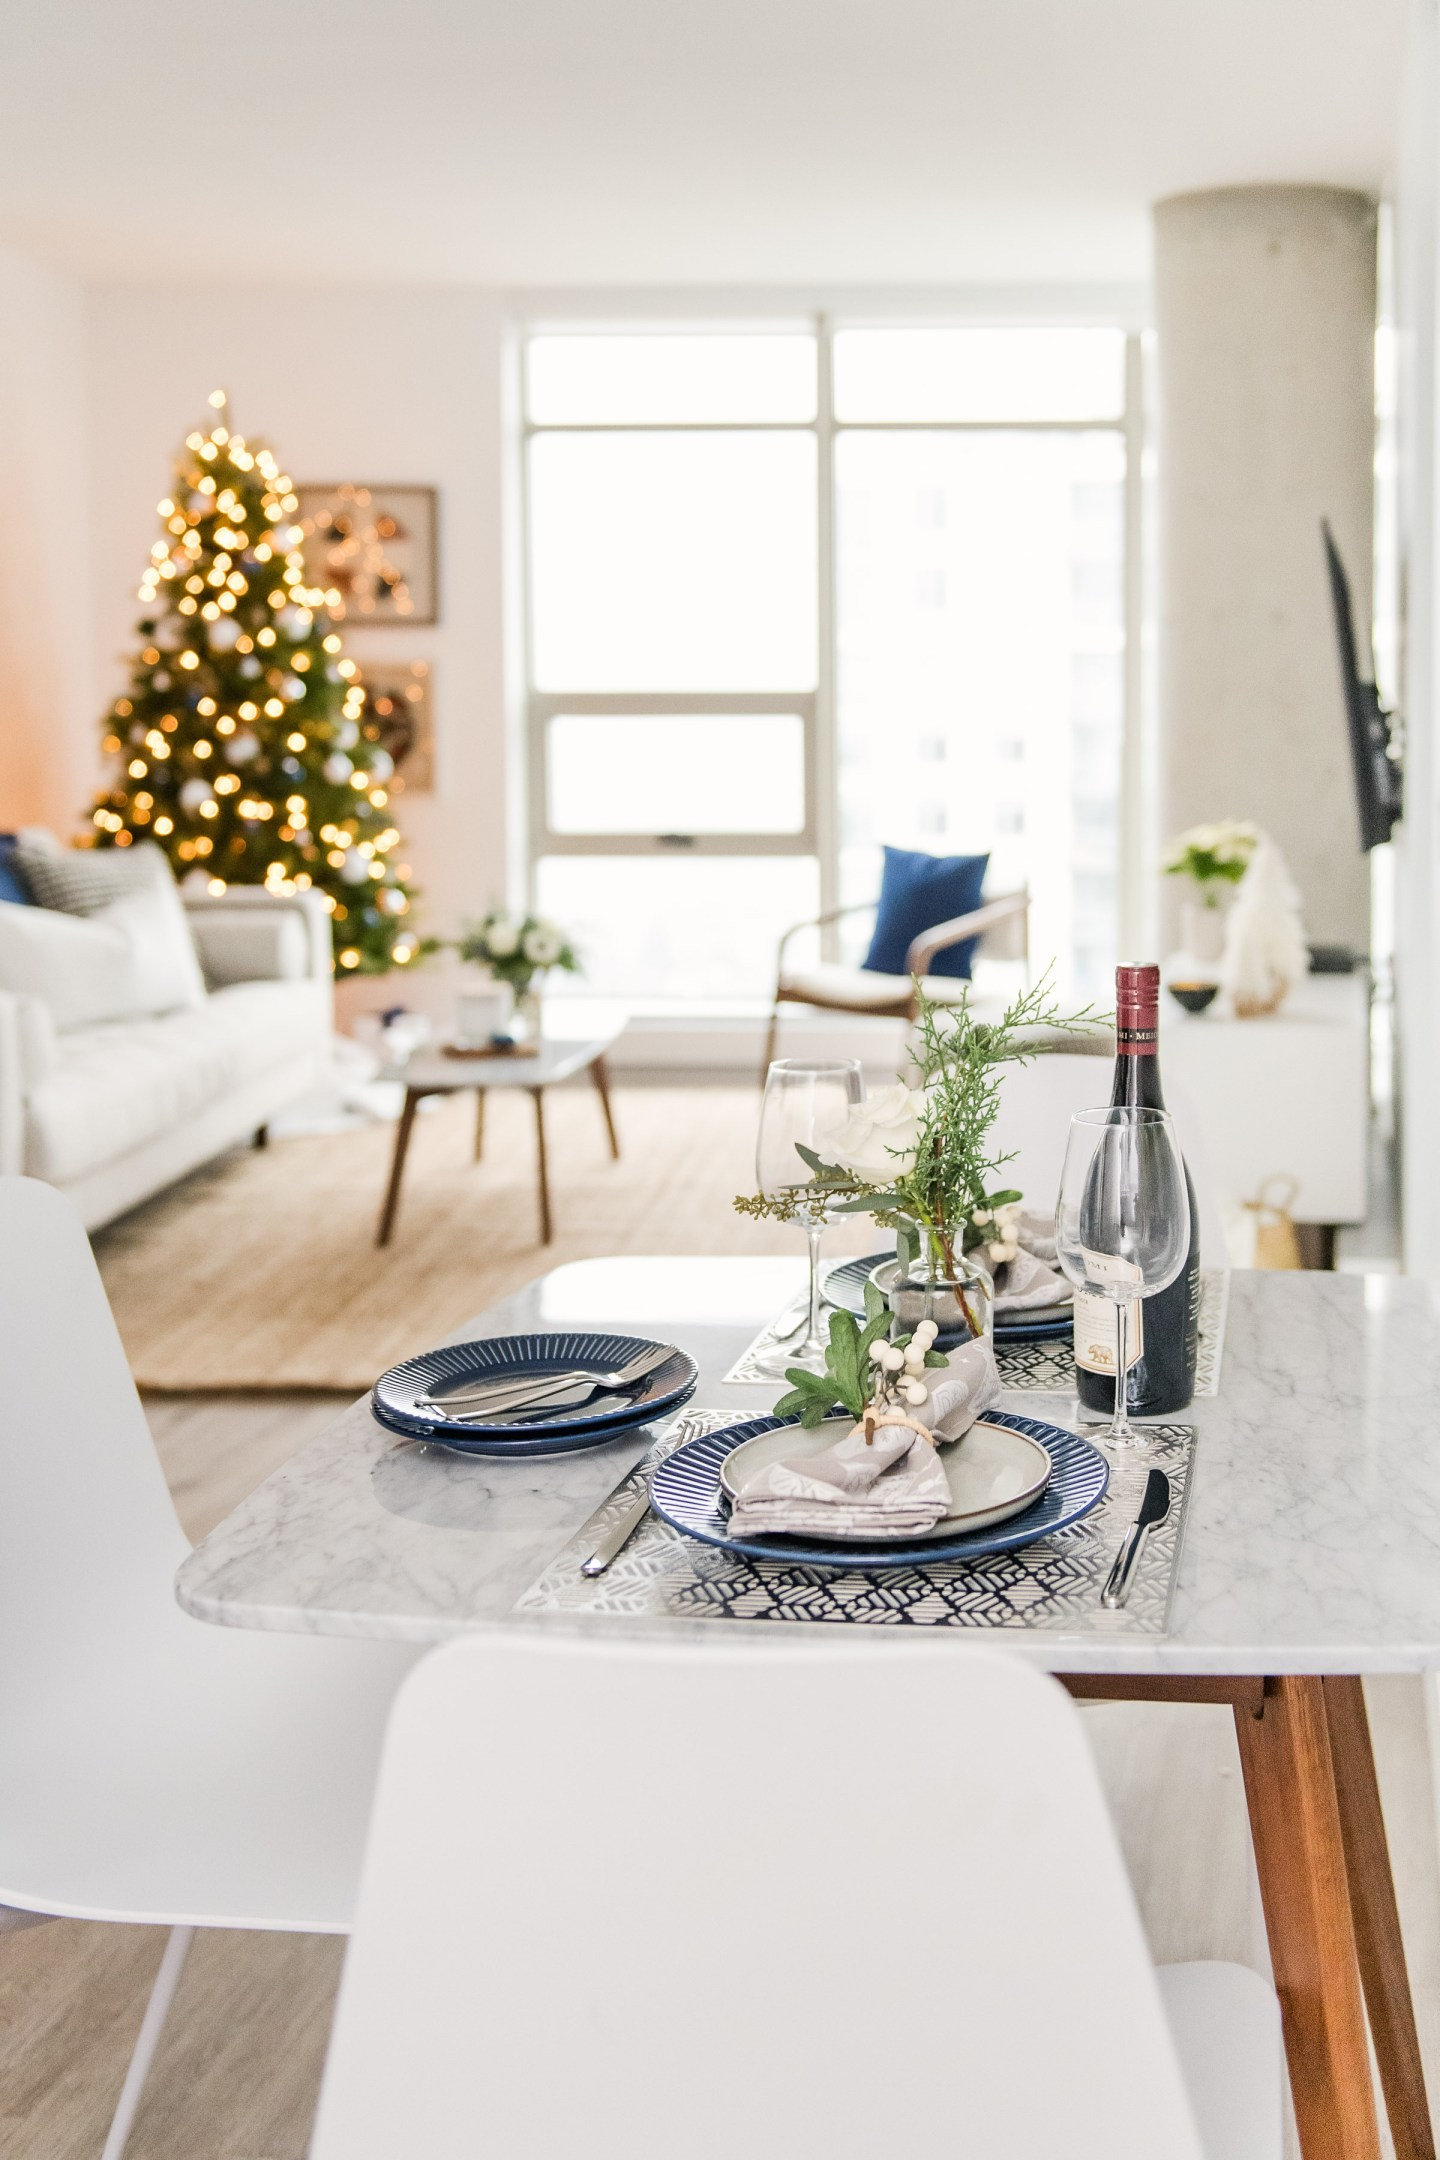 The Holidays Sparkle at Hollyburn Properties